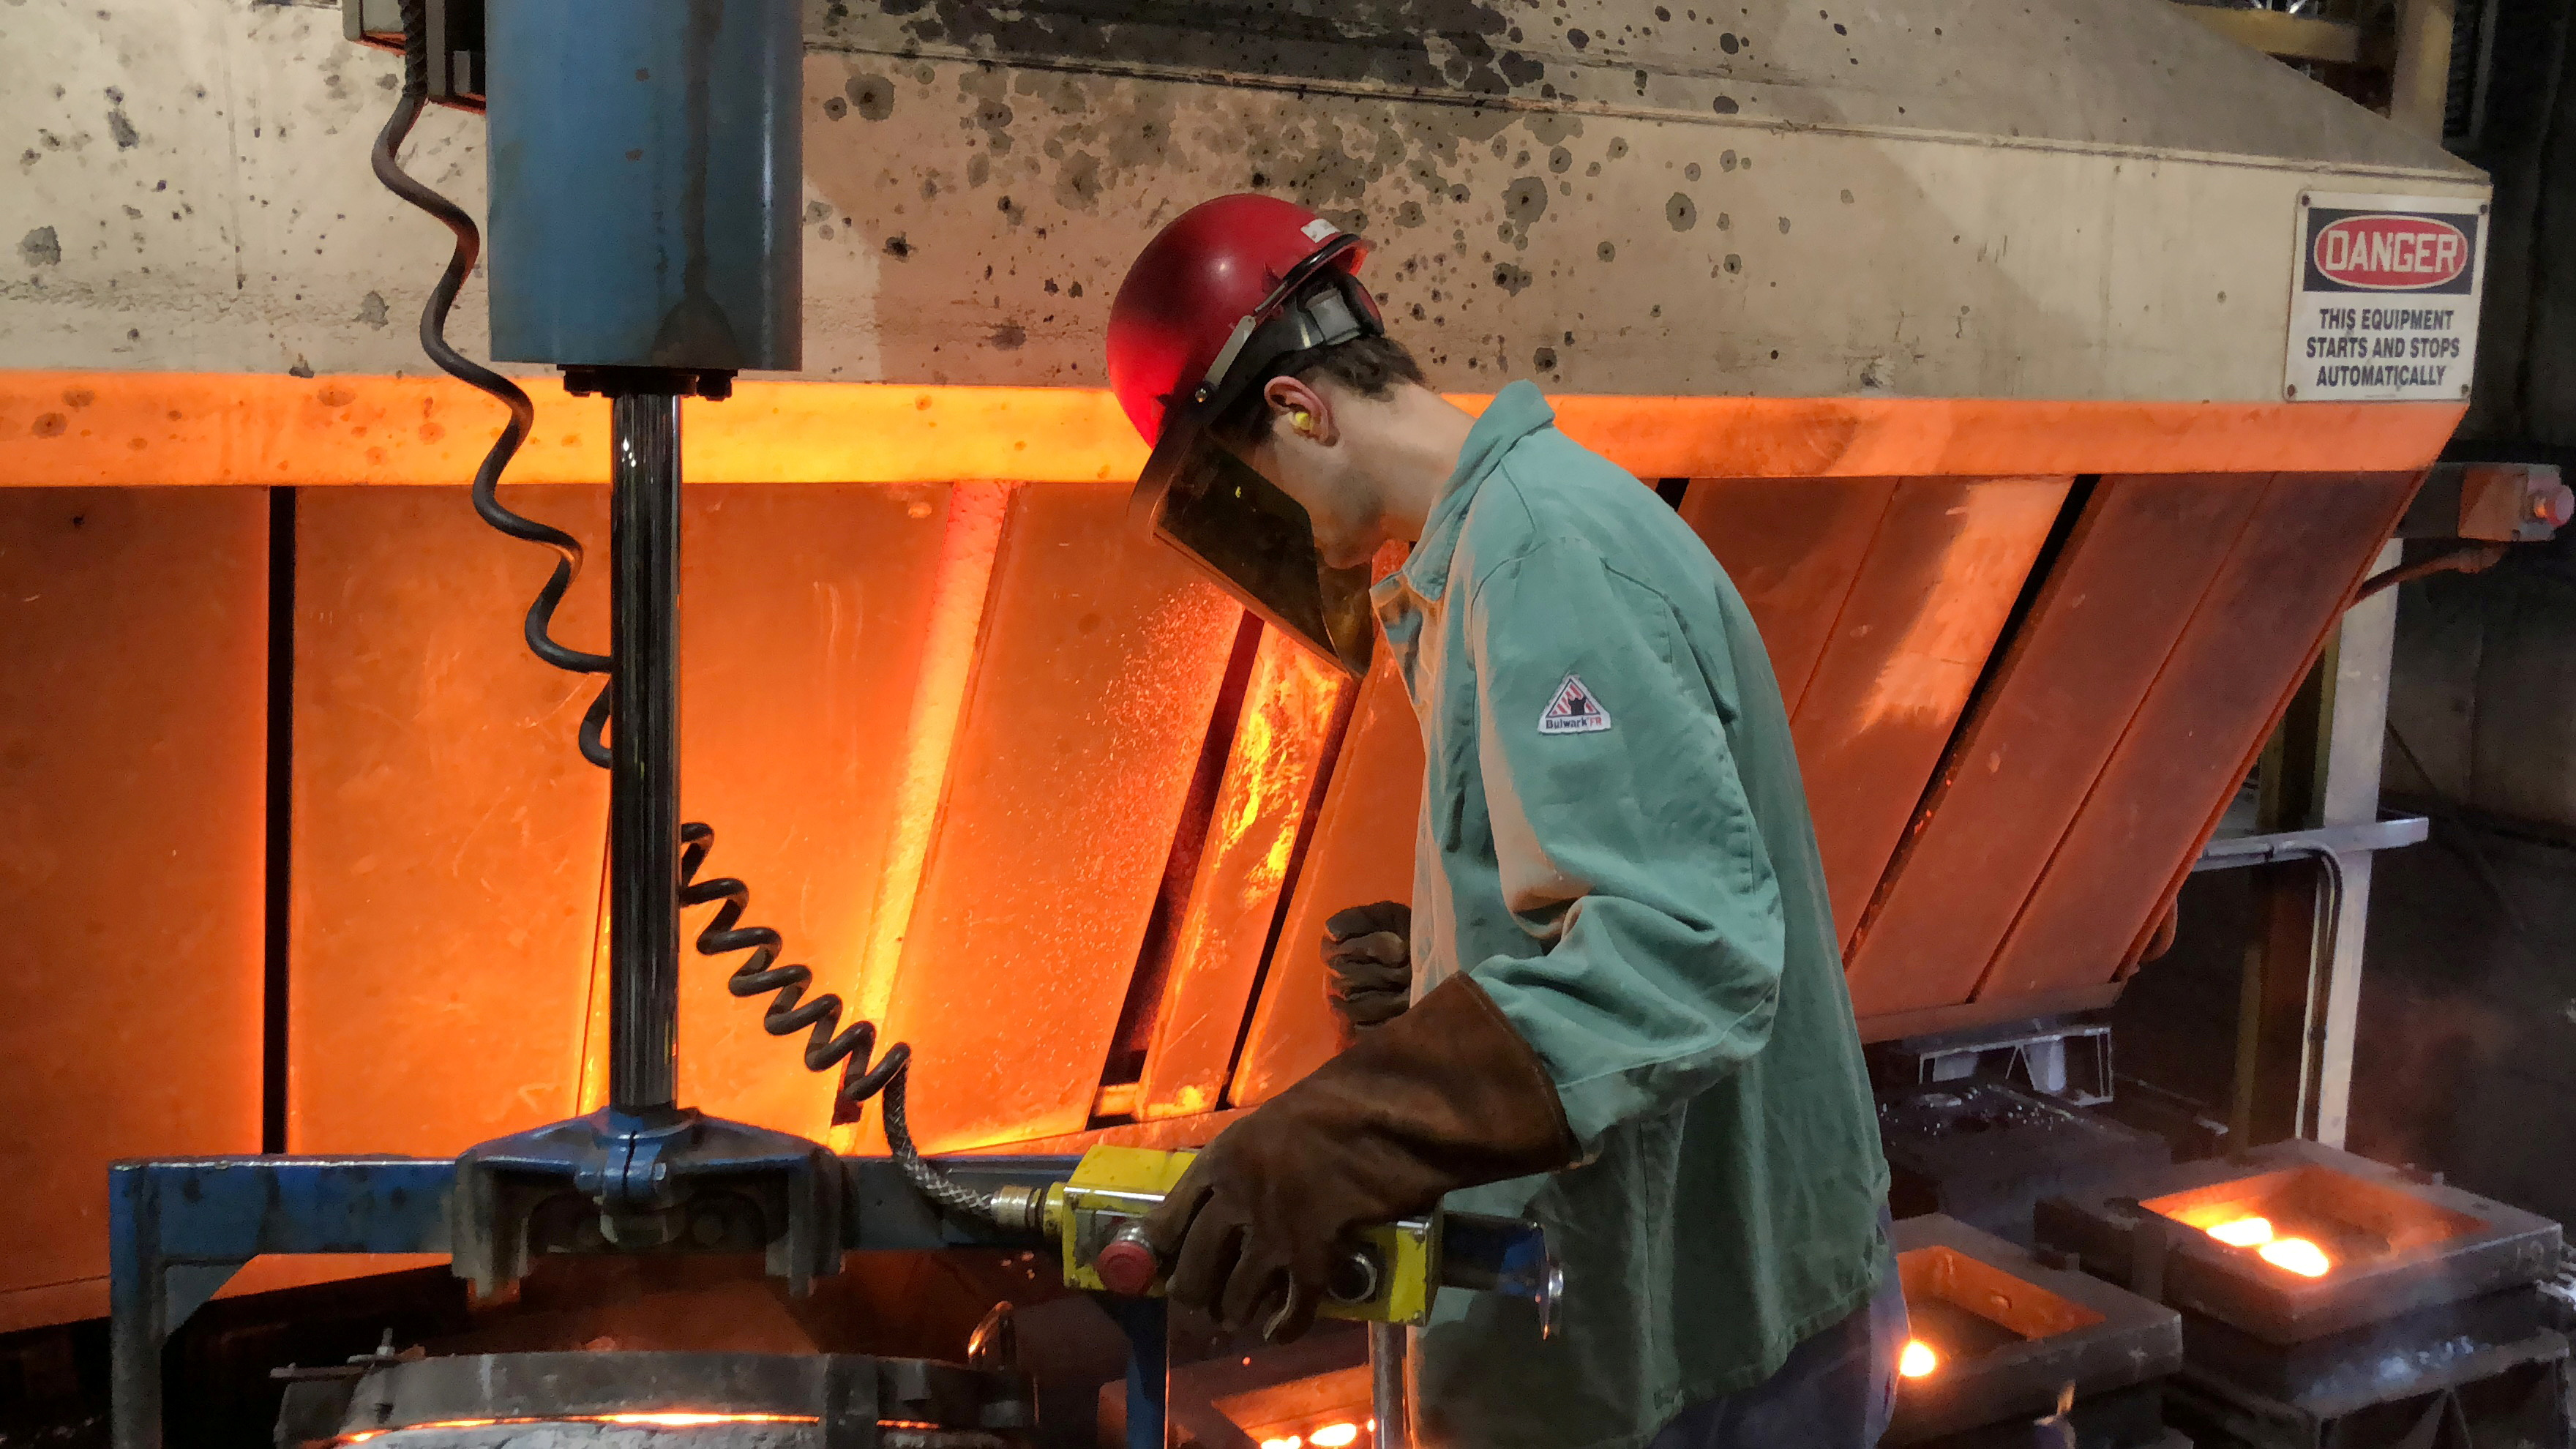 A worker pours hot metal at the Kirsh Foundry in Beaver Dam, Wisconsin, U.S., April 12, 2018. REUTERS/Timothy Aeppel